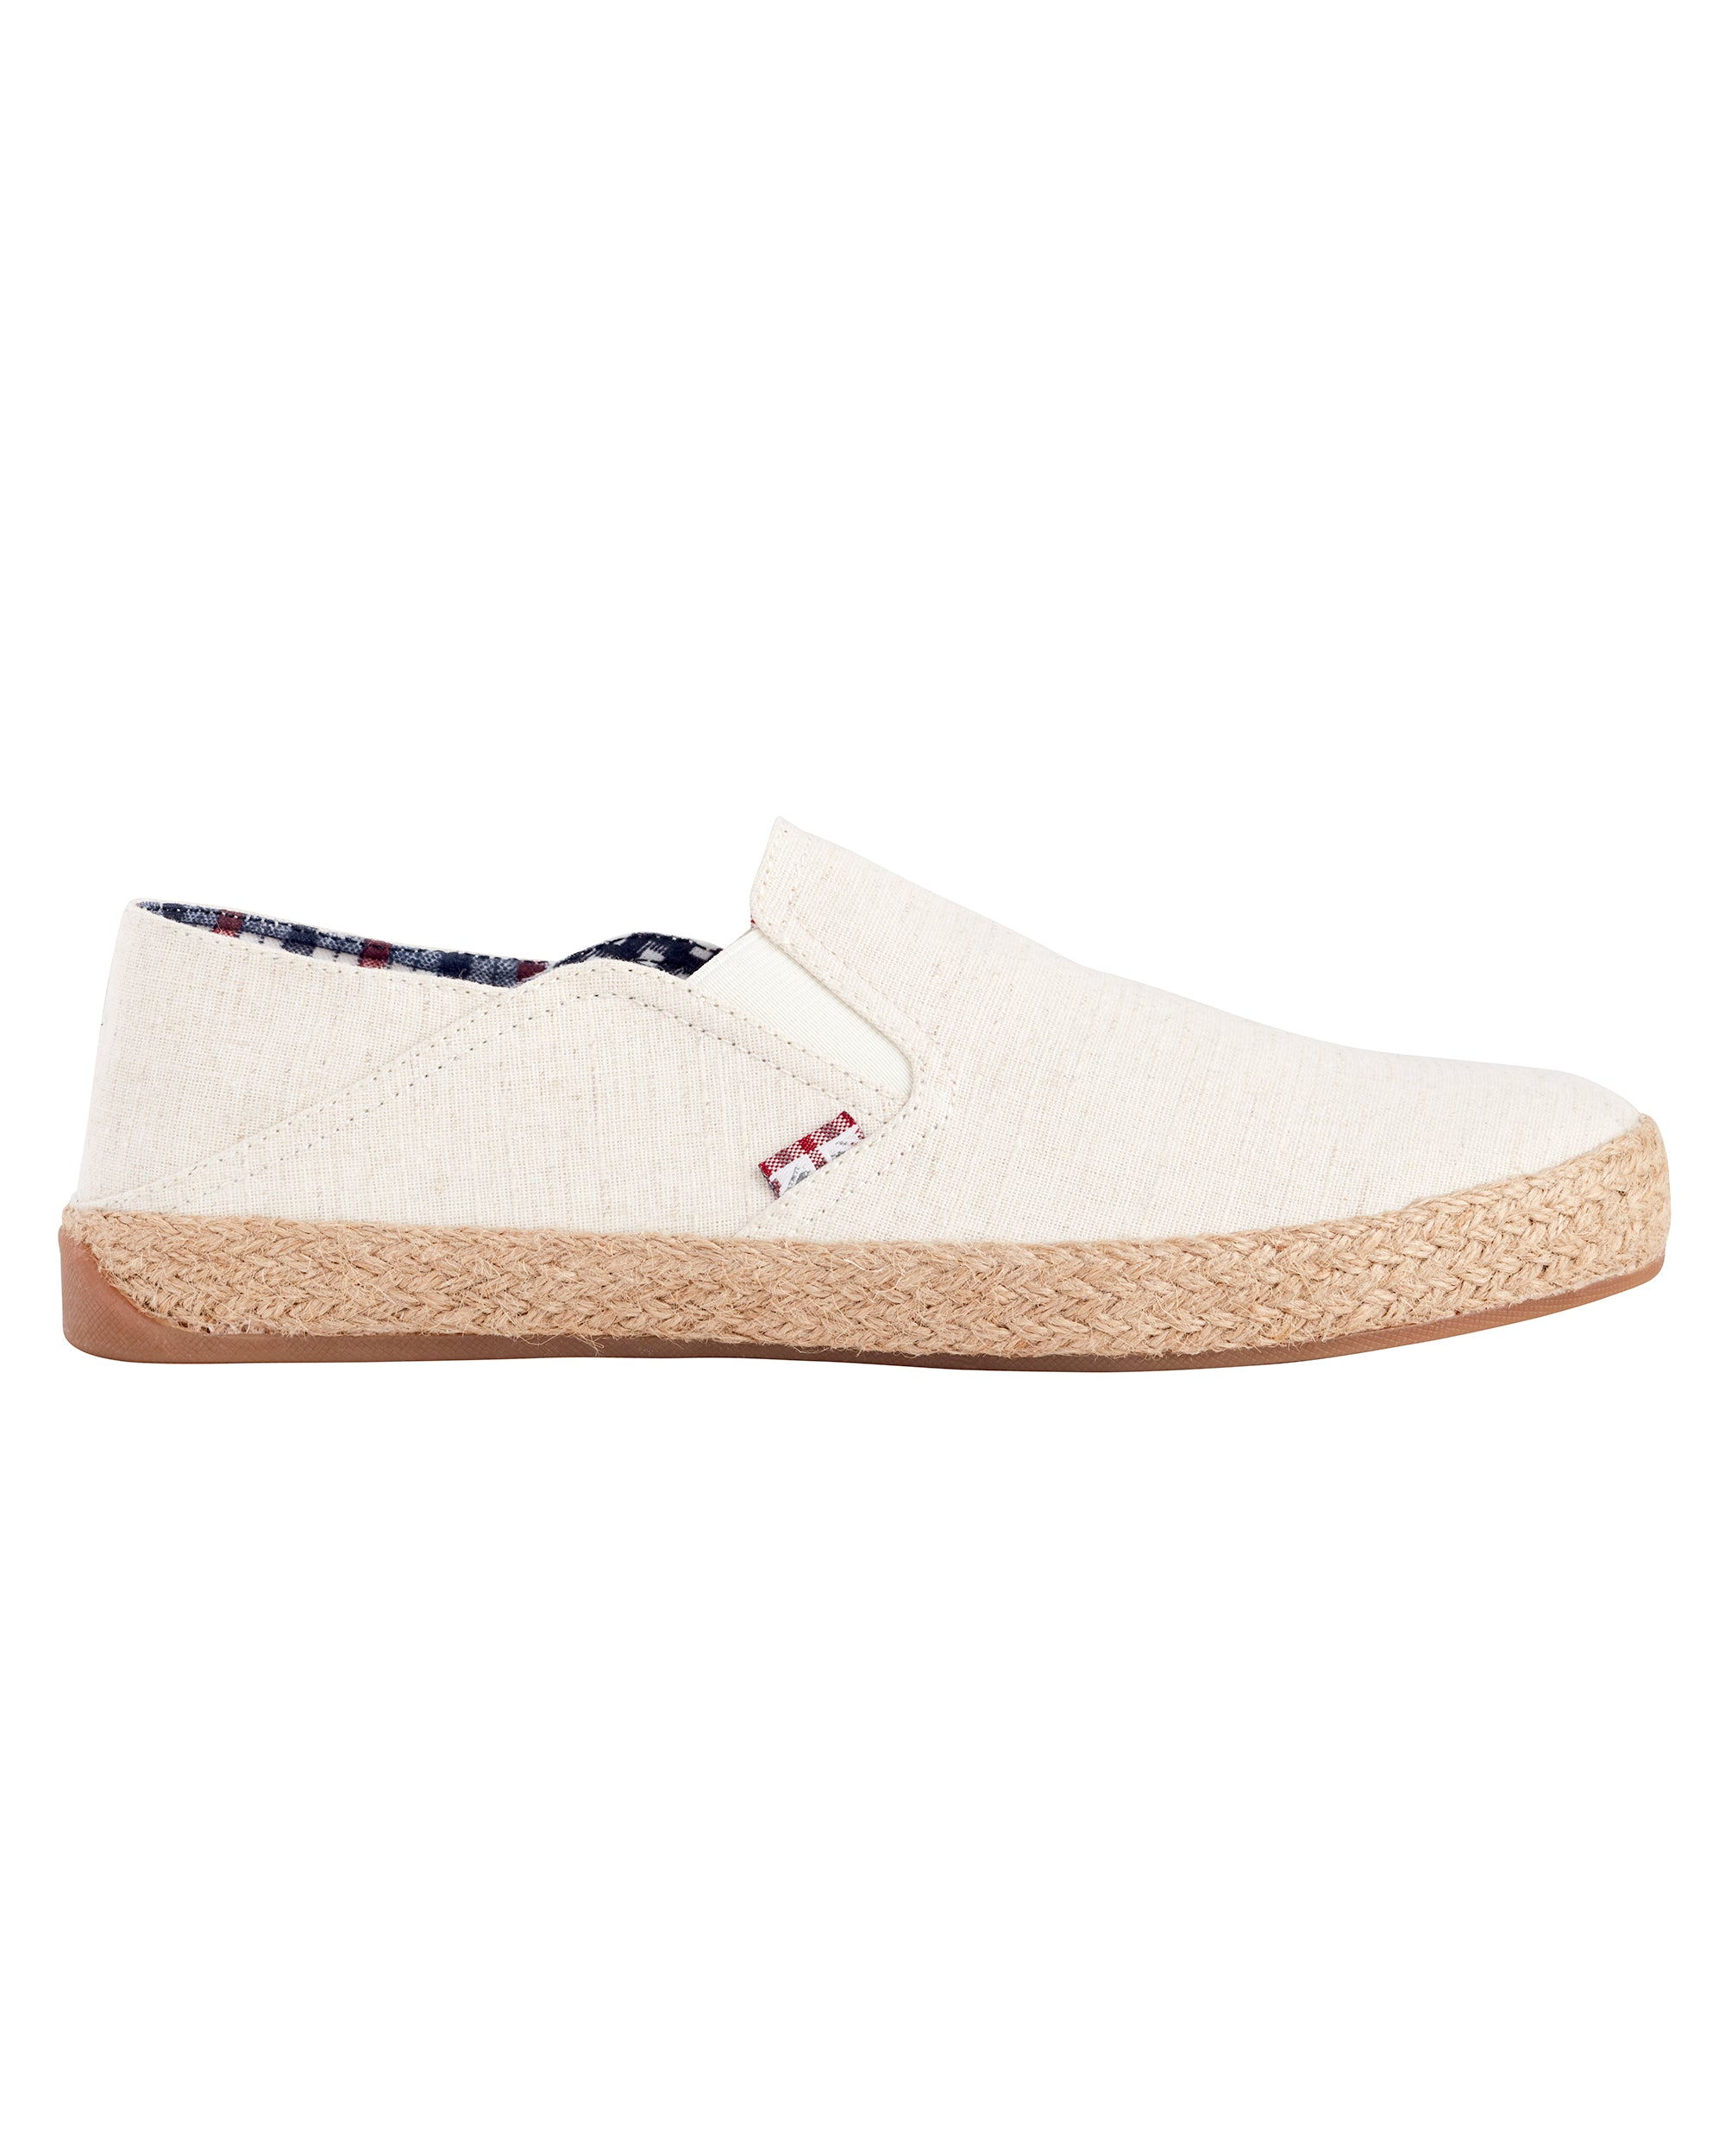 Prill Heel Slip-On - Natural